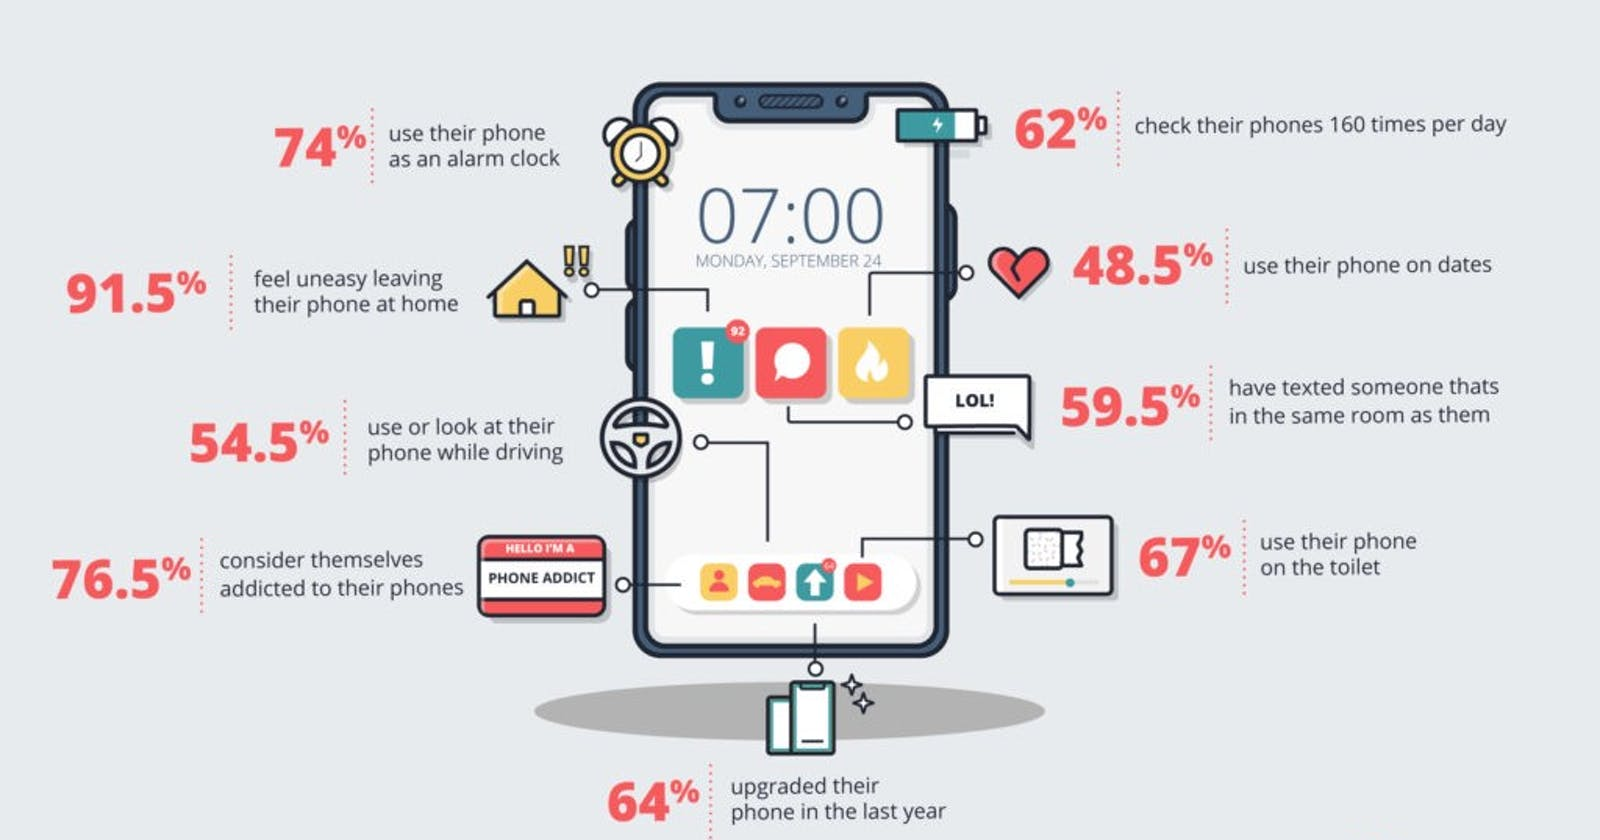 How I increased my productivity by switching off mobile data when not needed